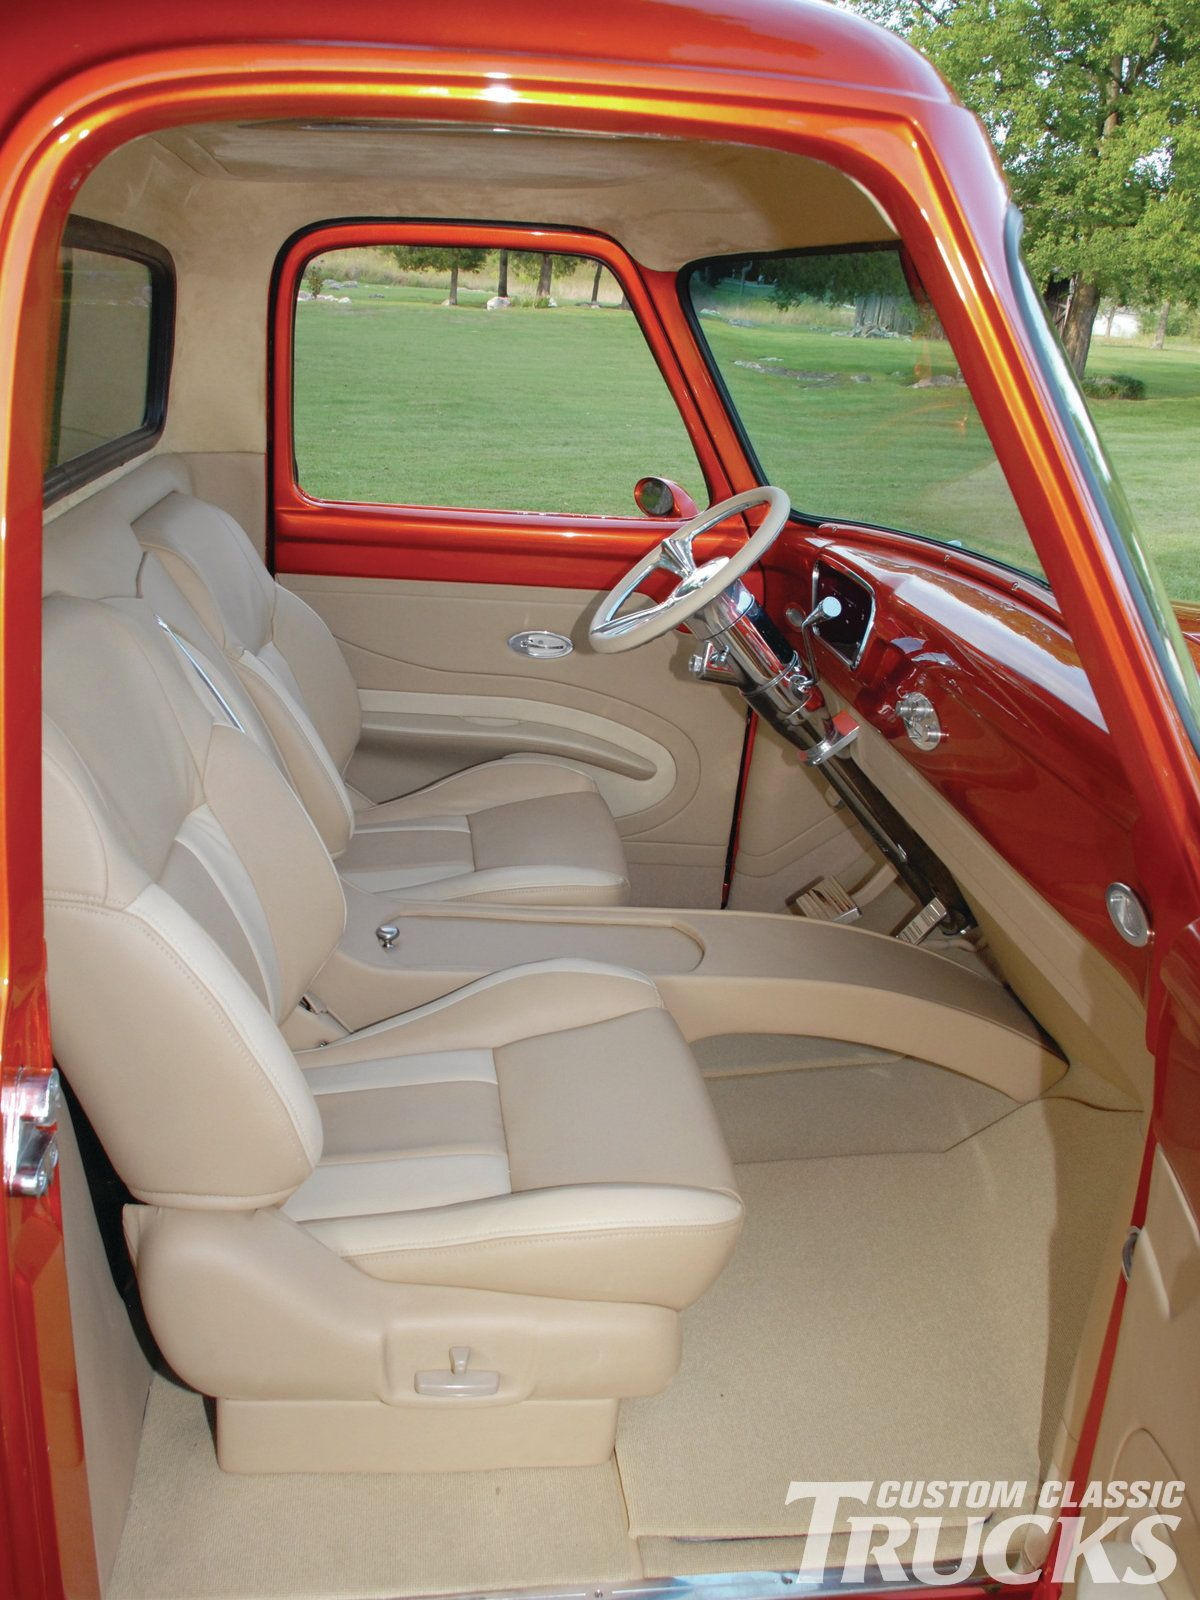 f250 replacement leather bucket seats - Google Search | Old School ...